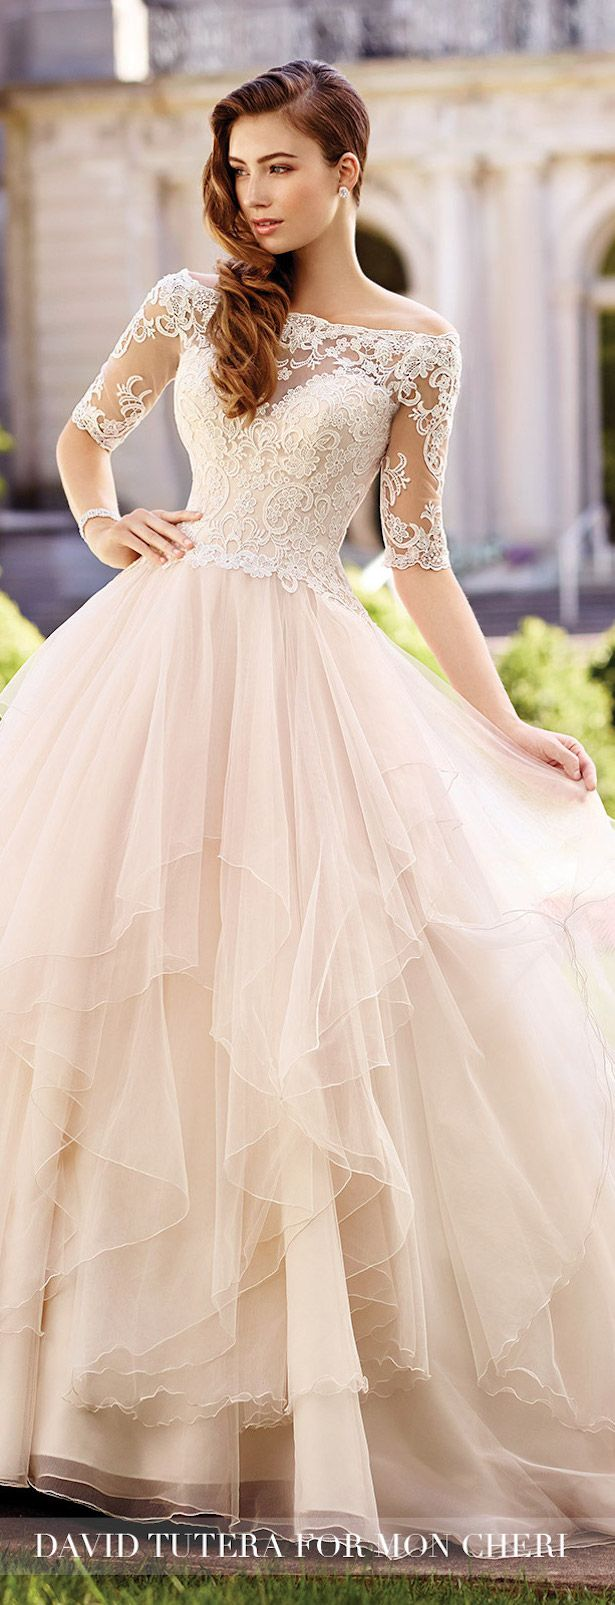 wedding gowns sleeved wedding dress Bridal Trends Lace Illusion Sleeves With Mon Cheri Bridals